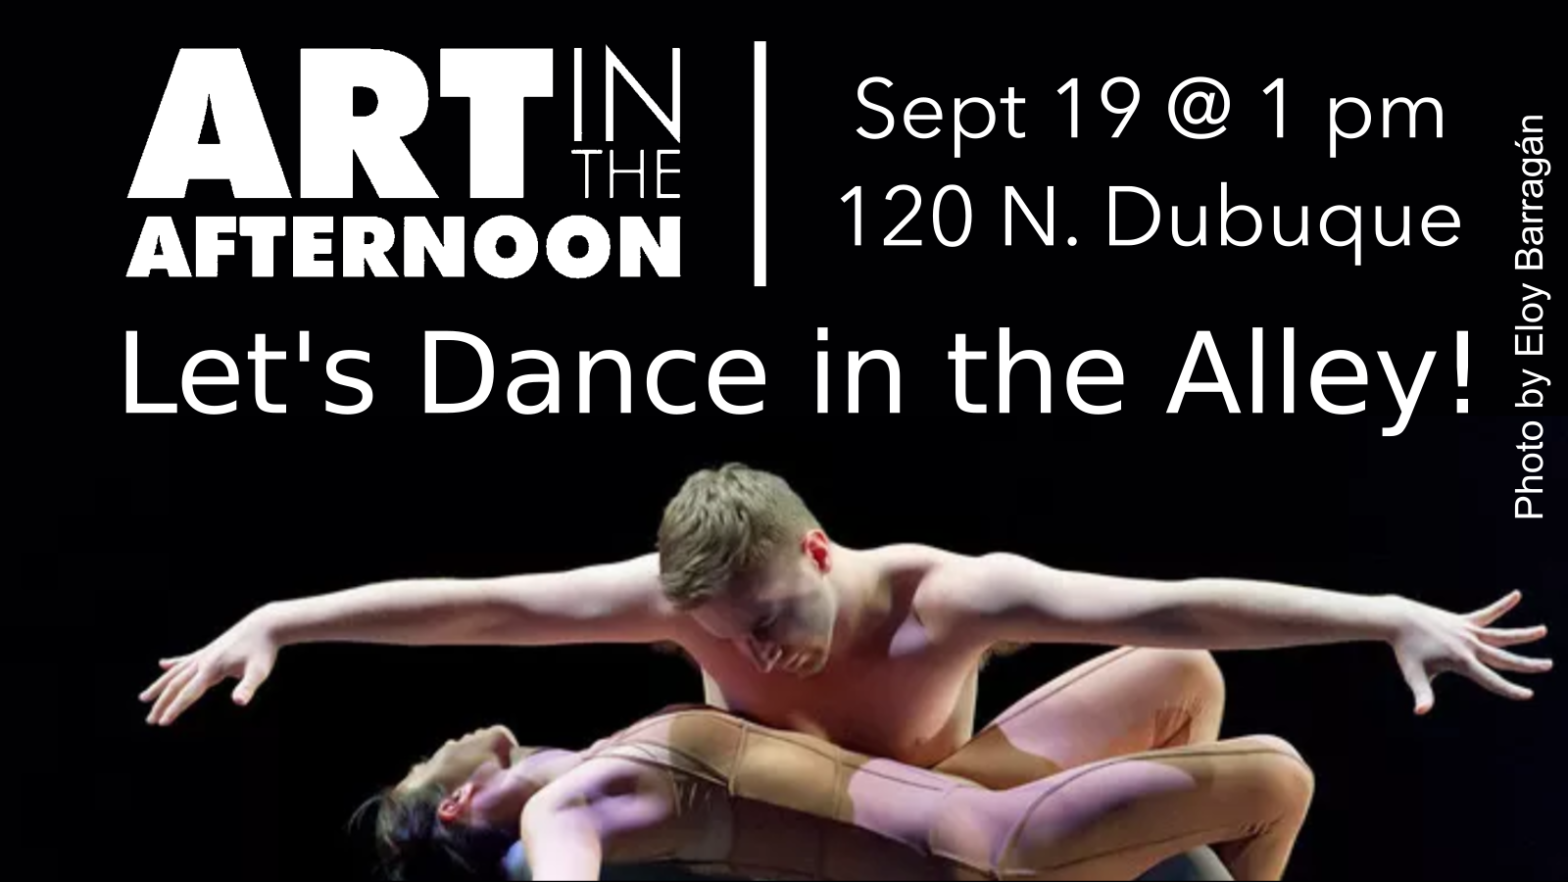 Art in the Afternoon   Let's Dance